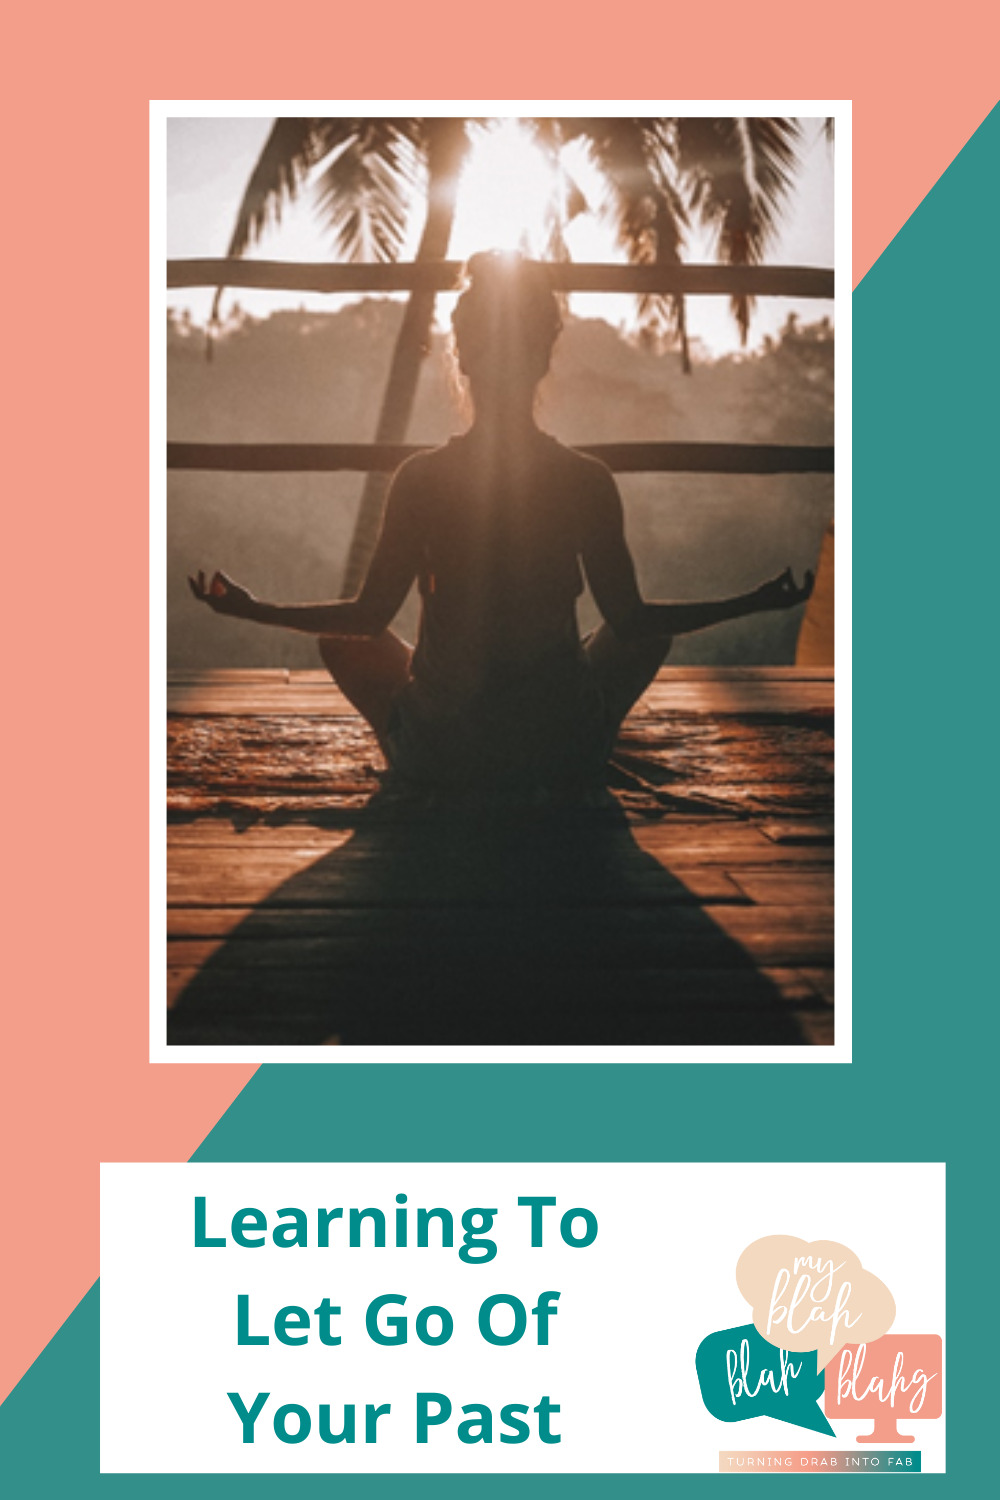 Myblahblahblahg.com has a little bit of everything. Get inspired with a range of tips. Stop letting your past decisions and mistakes hold you back. Find out now why your past does not define or shape you and your future.